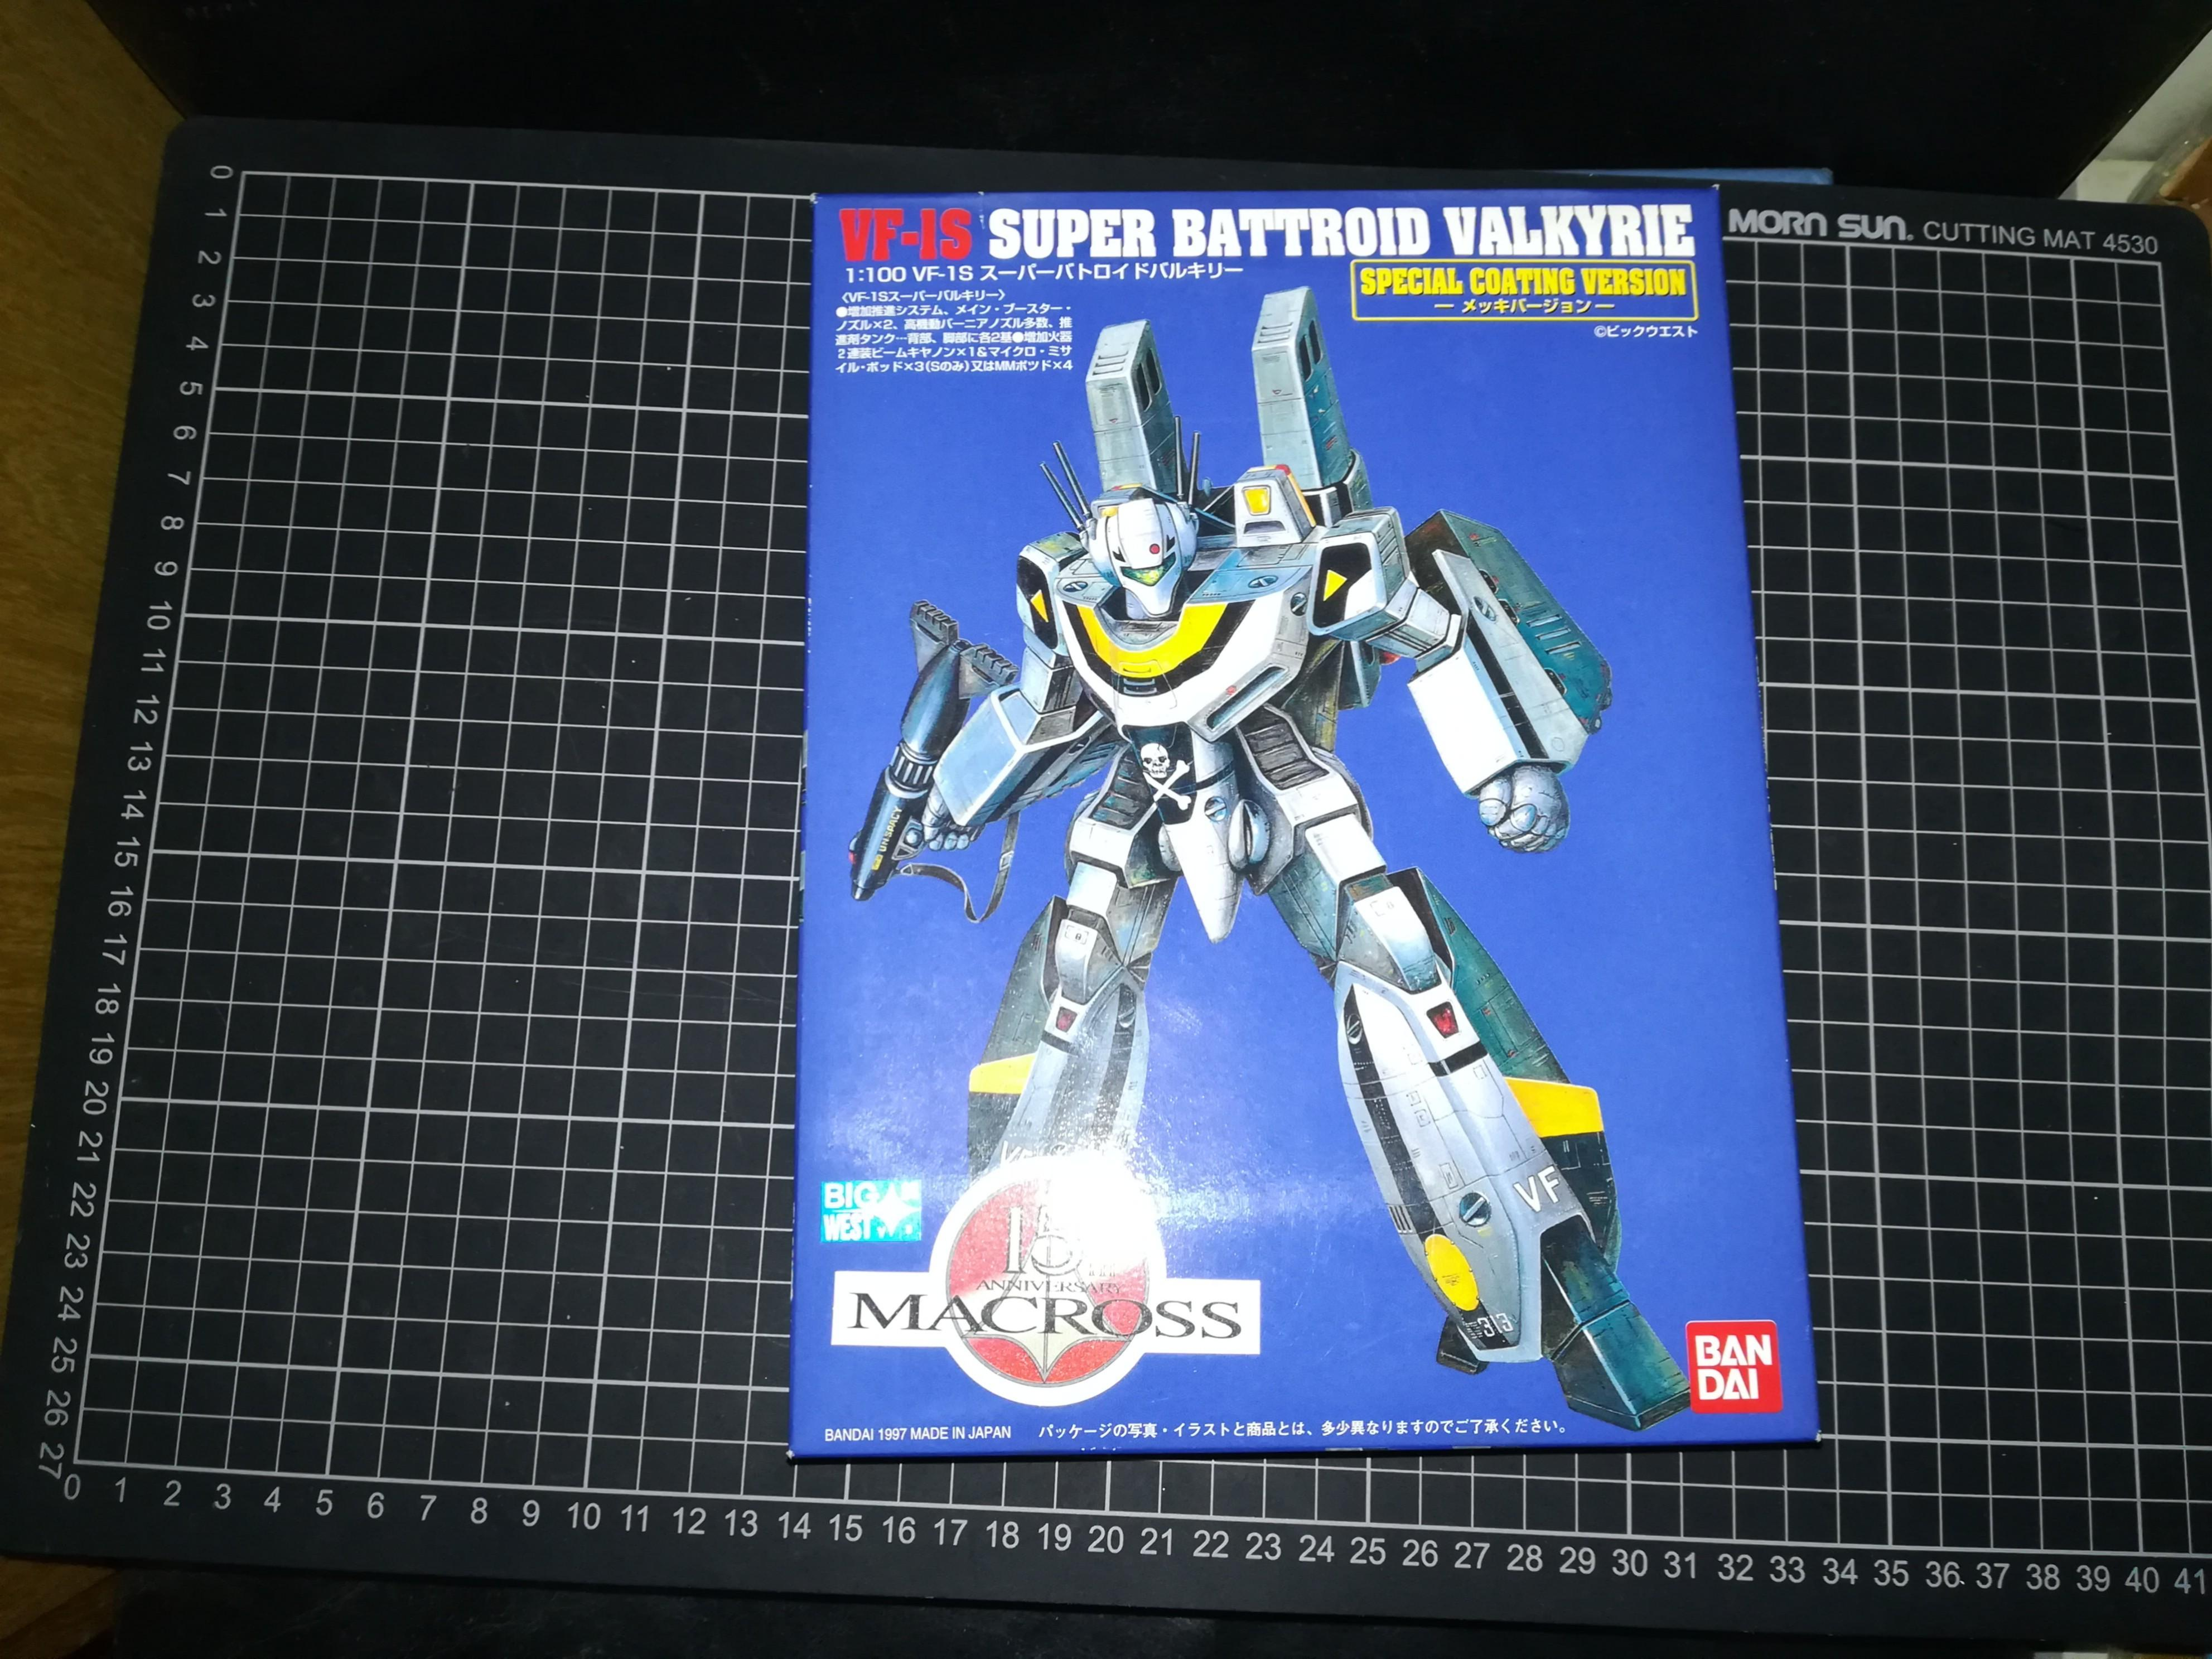 VF-1S Super battroid valkyrie (special coating version)